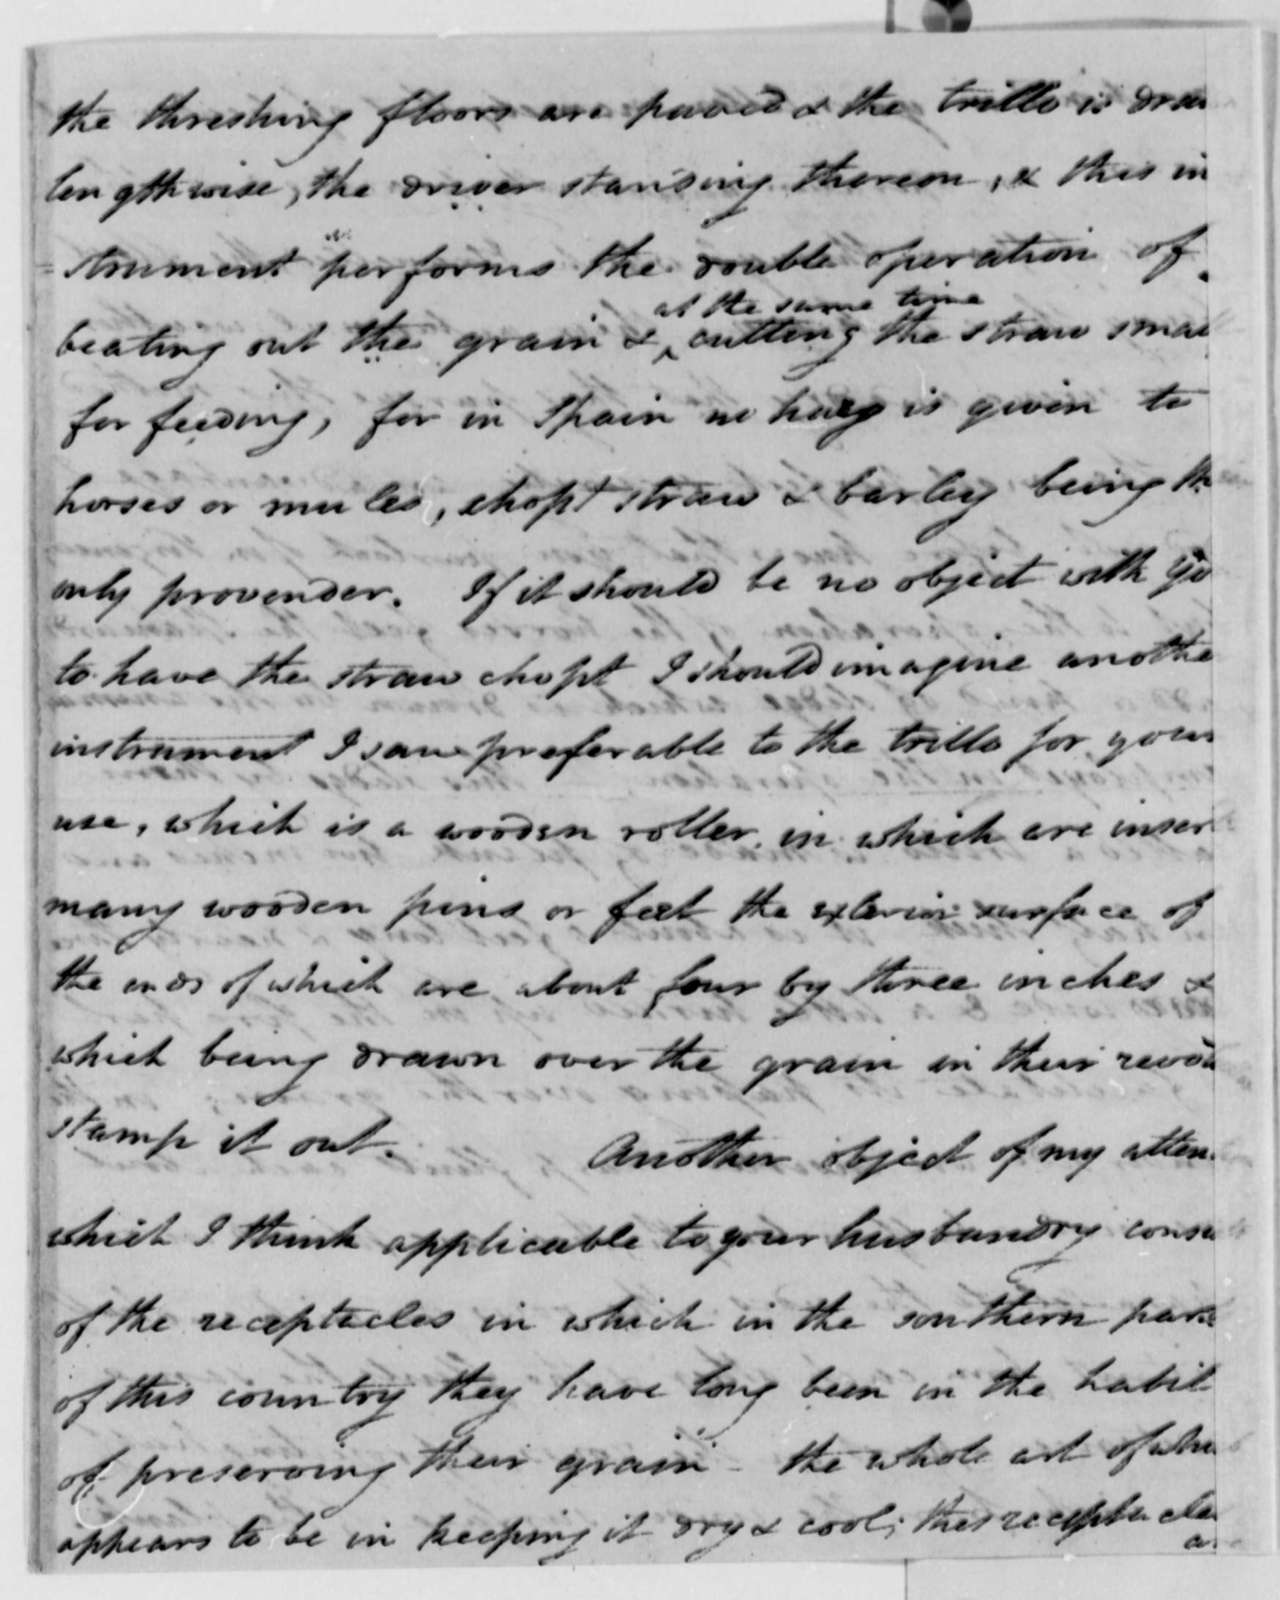 Thomas Pinckney to Thomas Jefferson, March 16, 1796